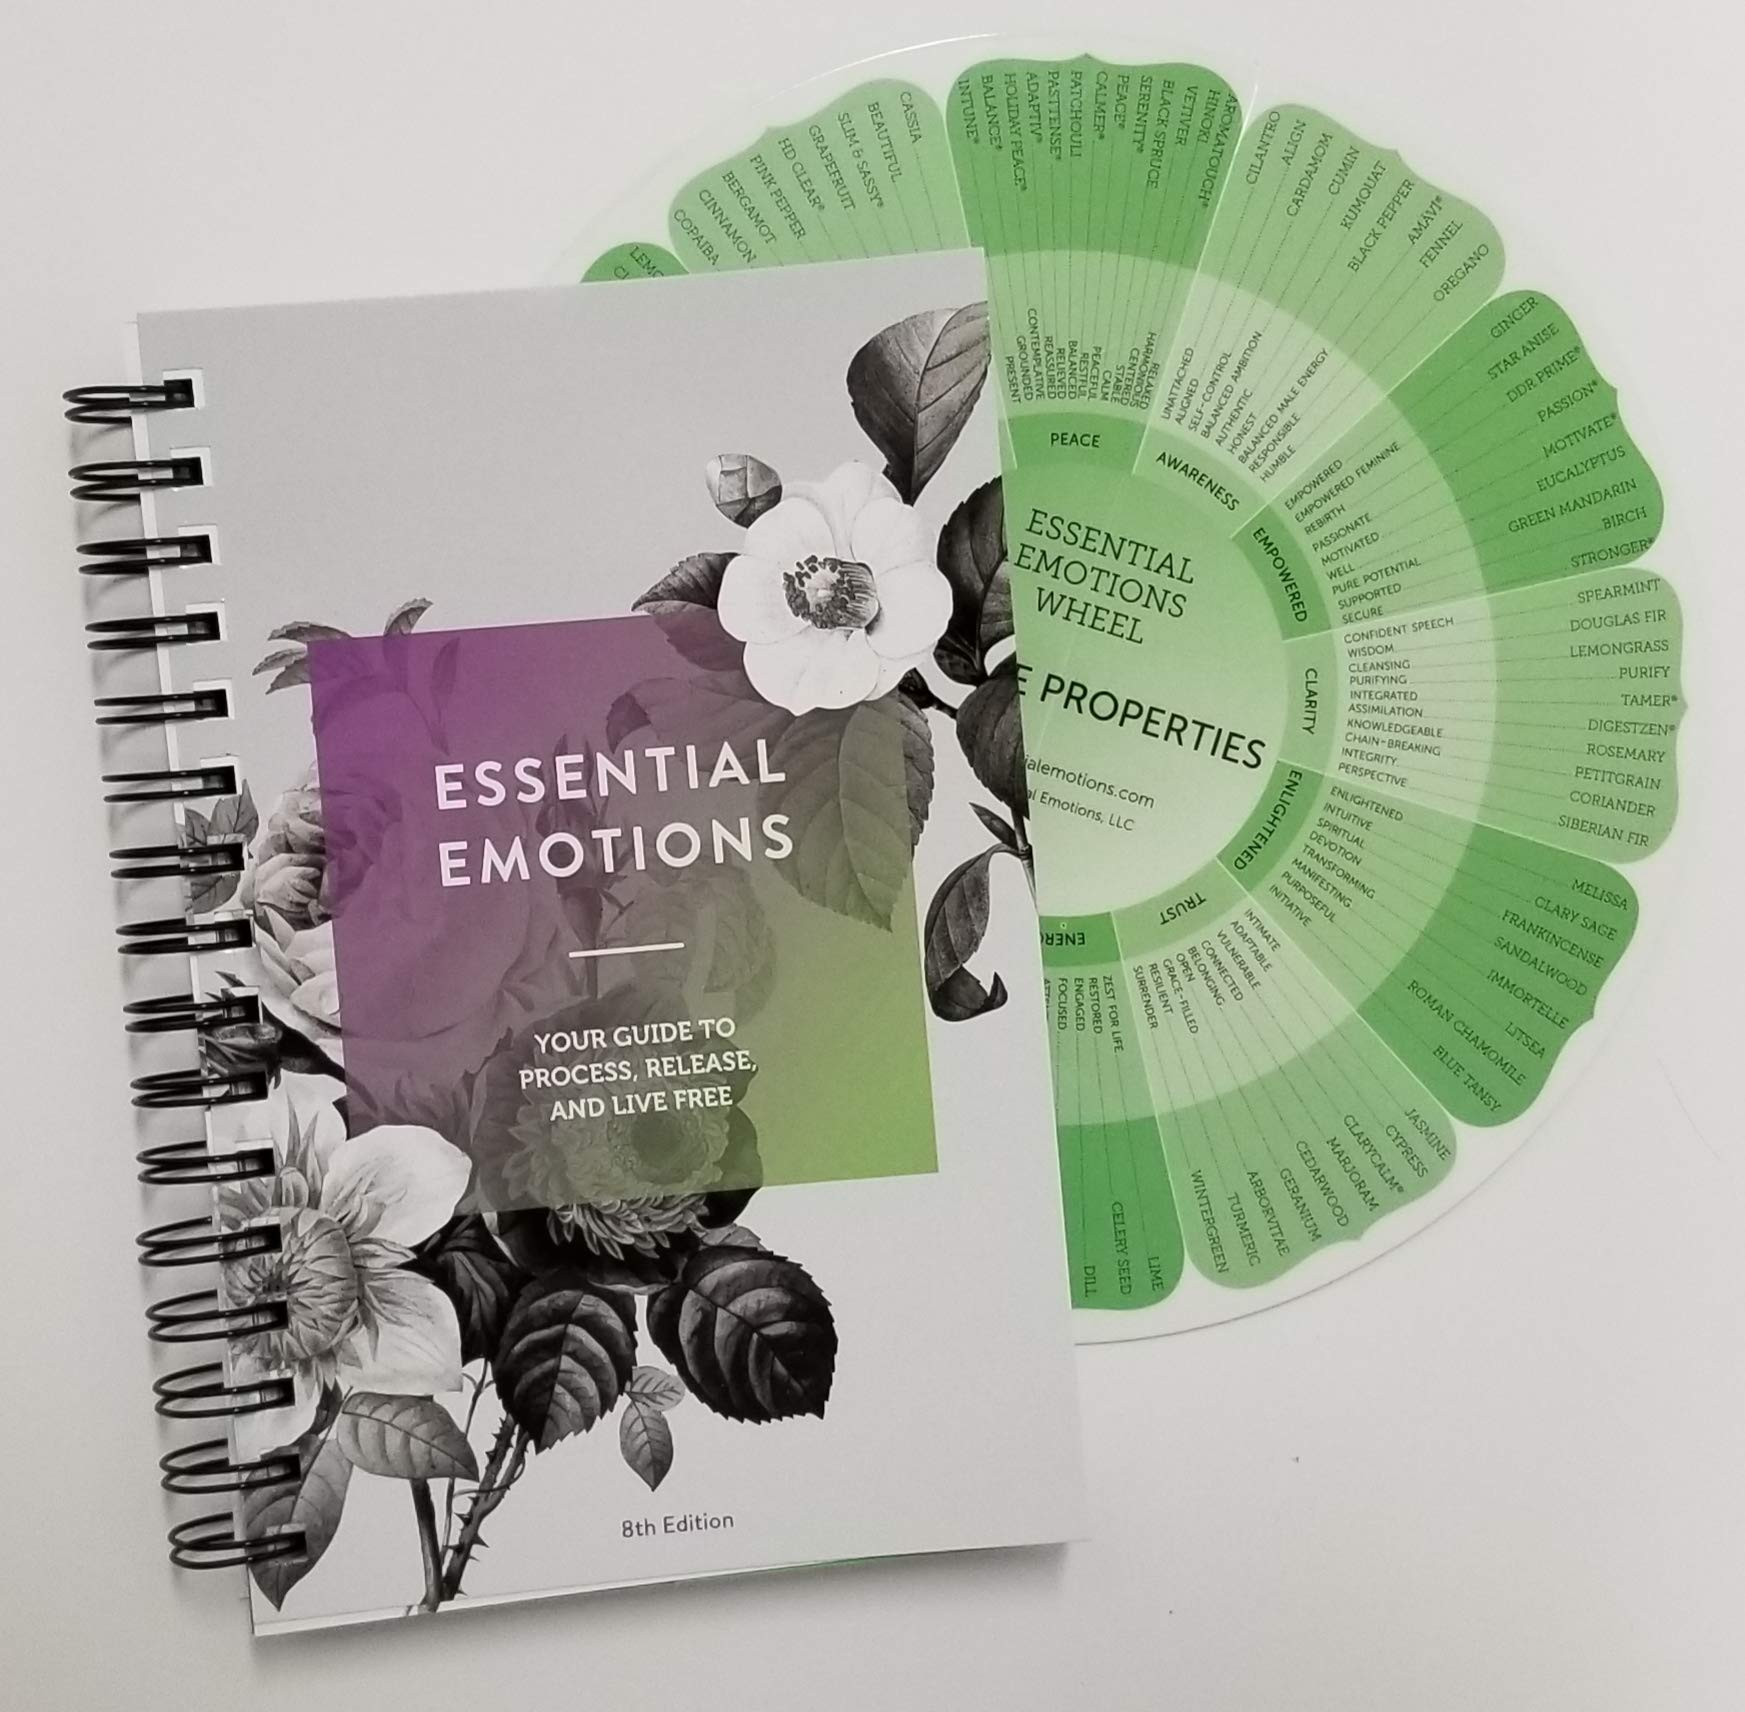 Essential Emotions: Your Guide to Process, Release, and Live Free, 8th Edition Book and Essential Emotions Wheel 2019 Emotions and Essential Oils by Essential Emotions